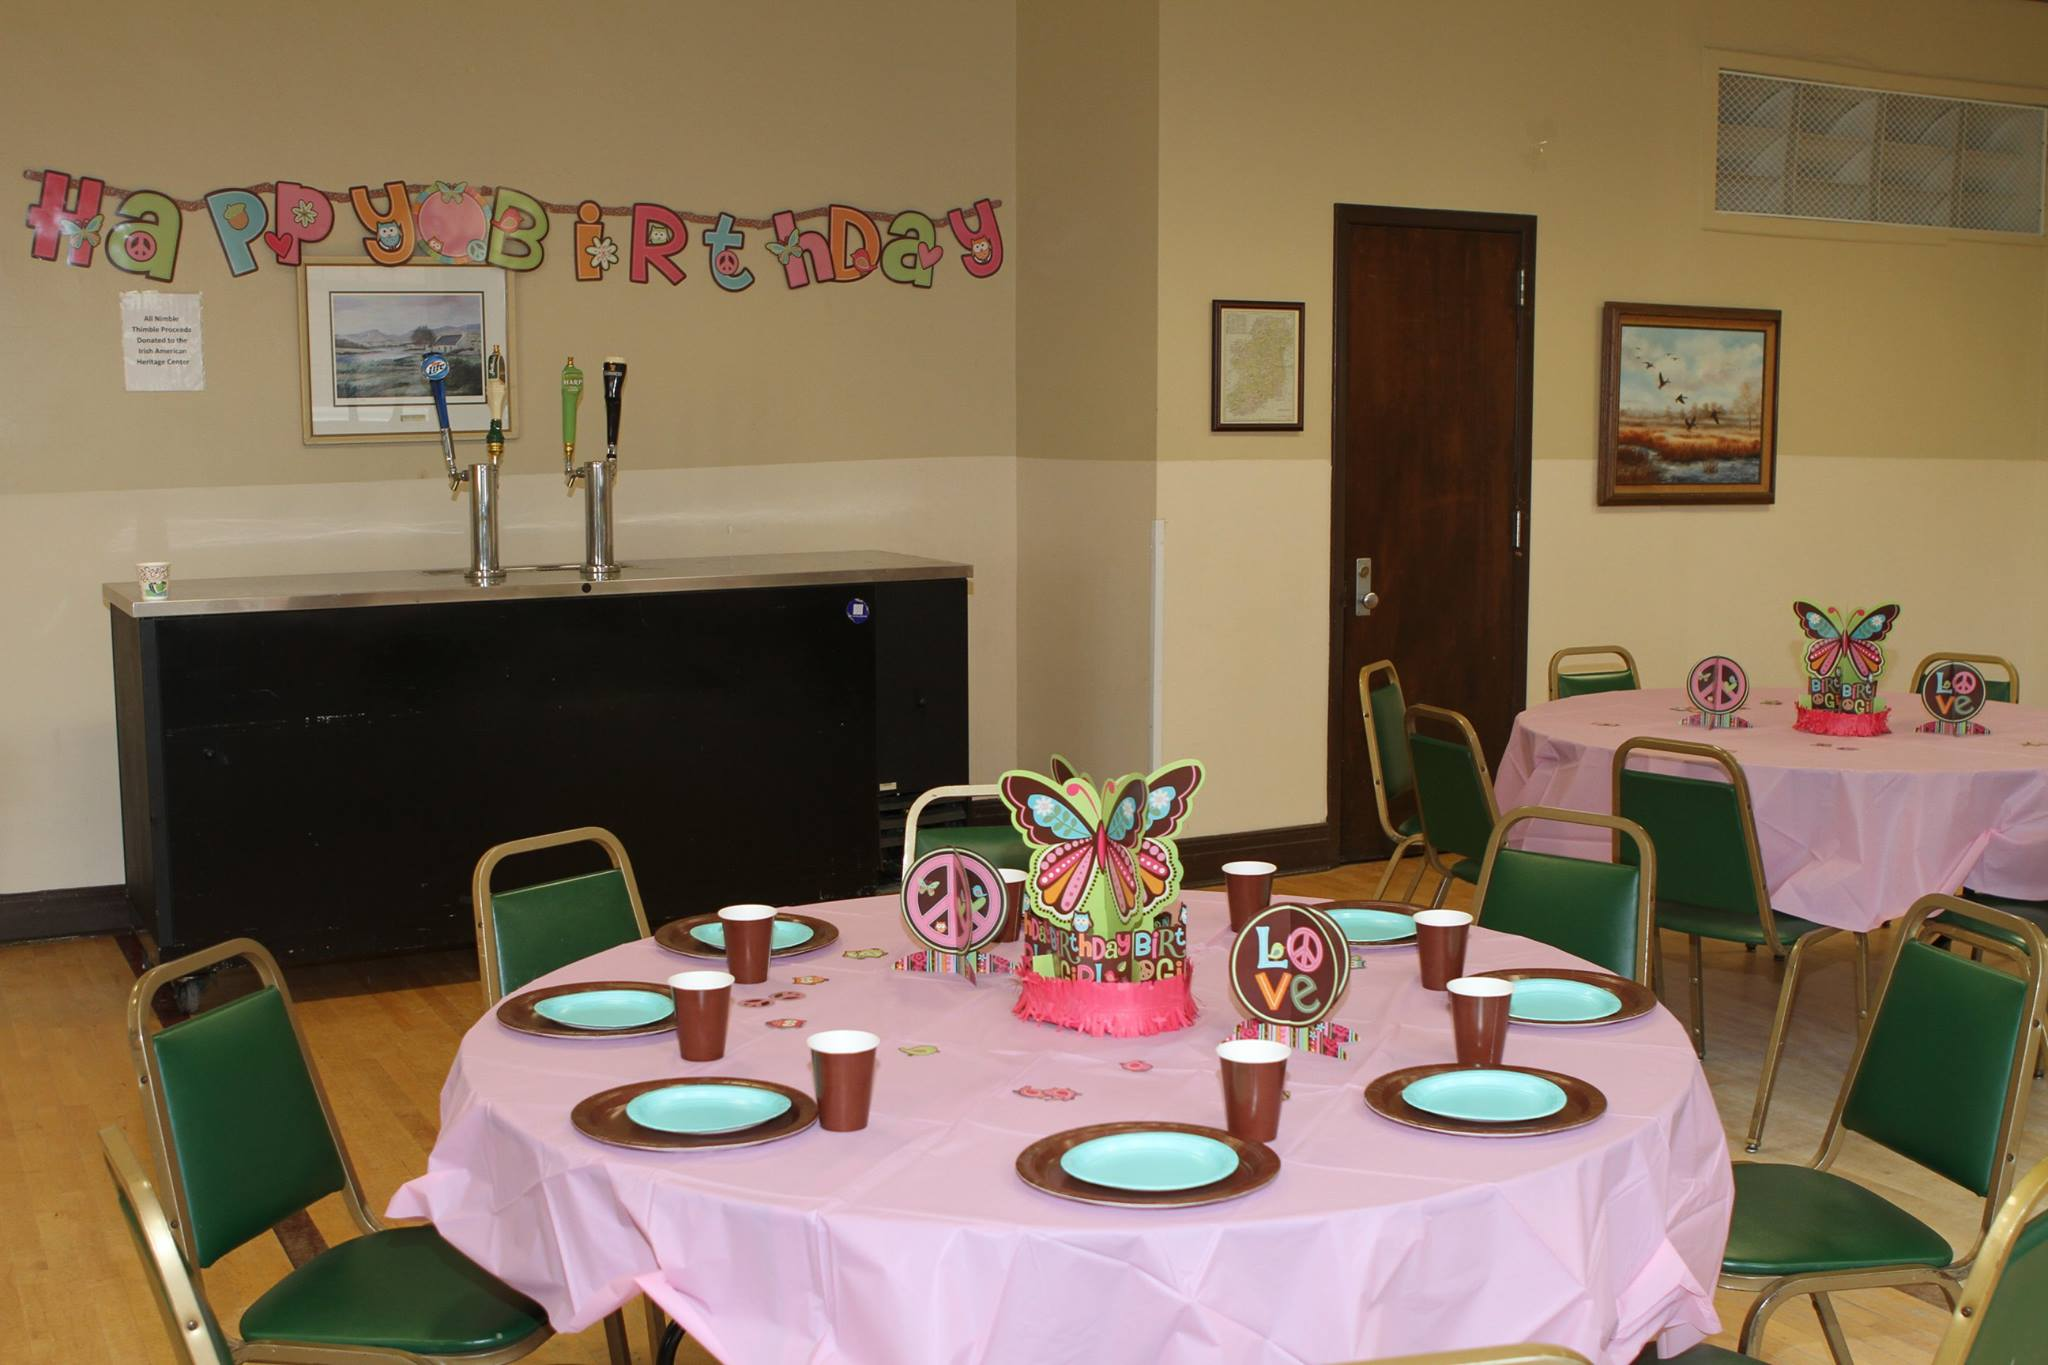 Photo #24 Ceili Room (Room 111) at Irish American Heritage Center